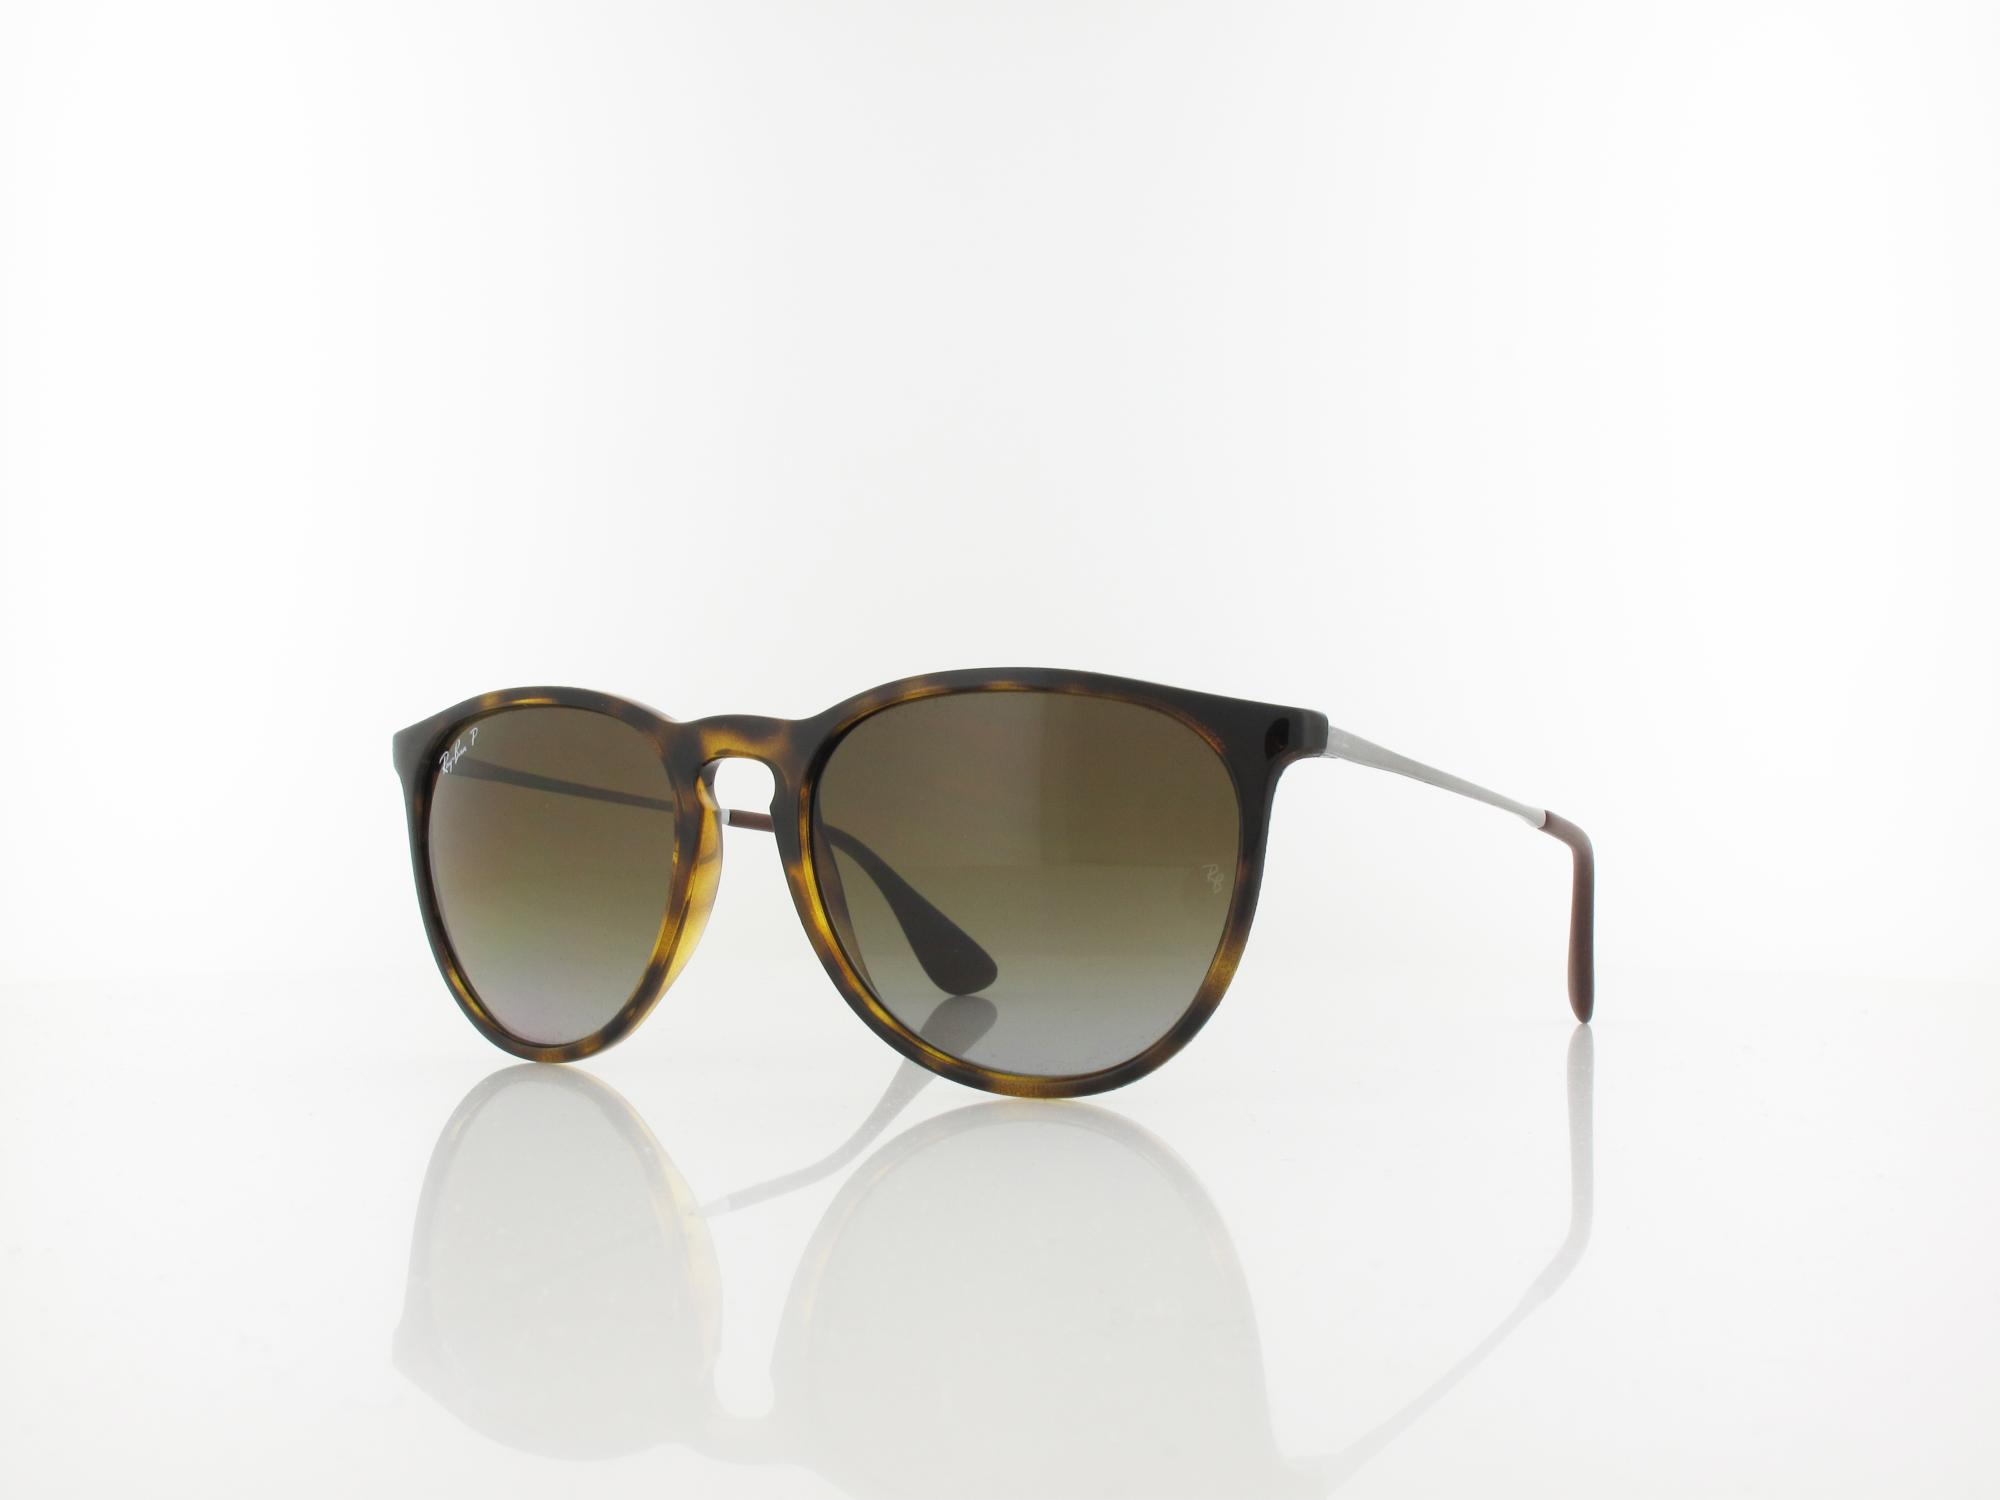 Ray Ban | RB4171 710/T5 54 | havana / polar brown gardient